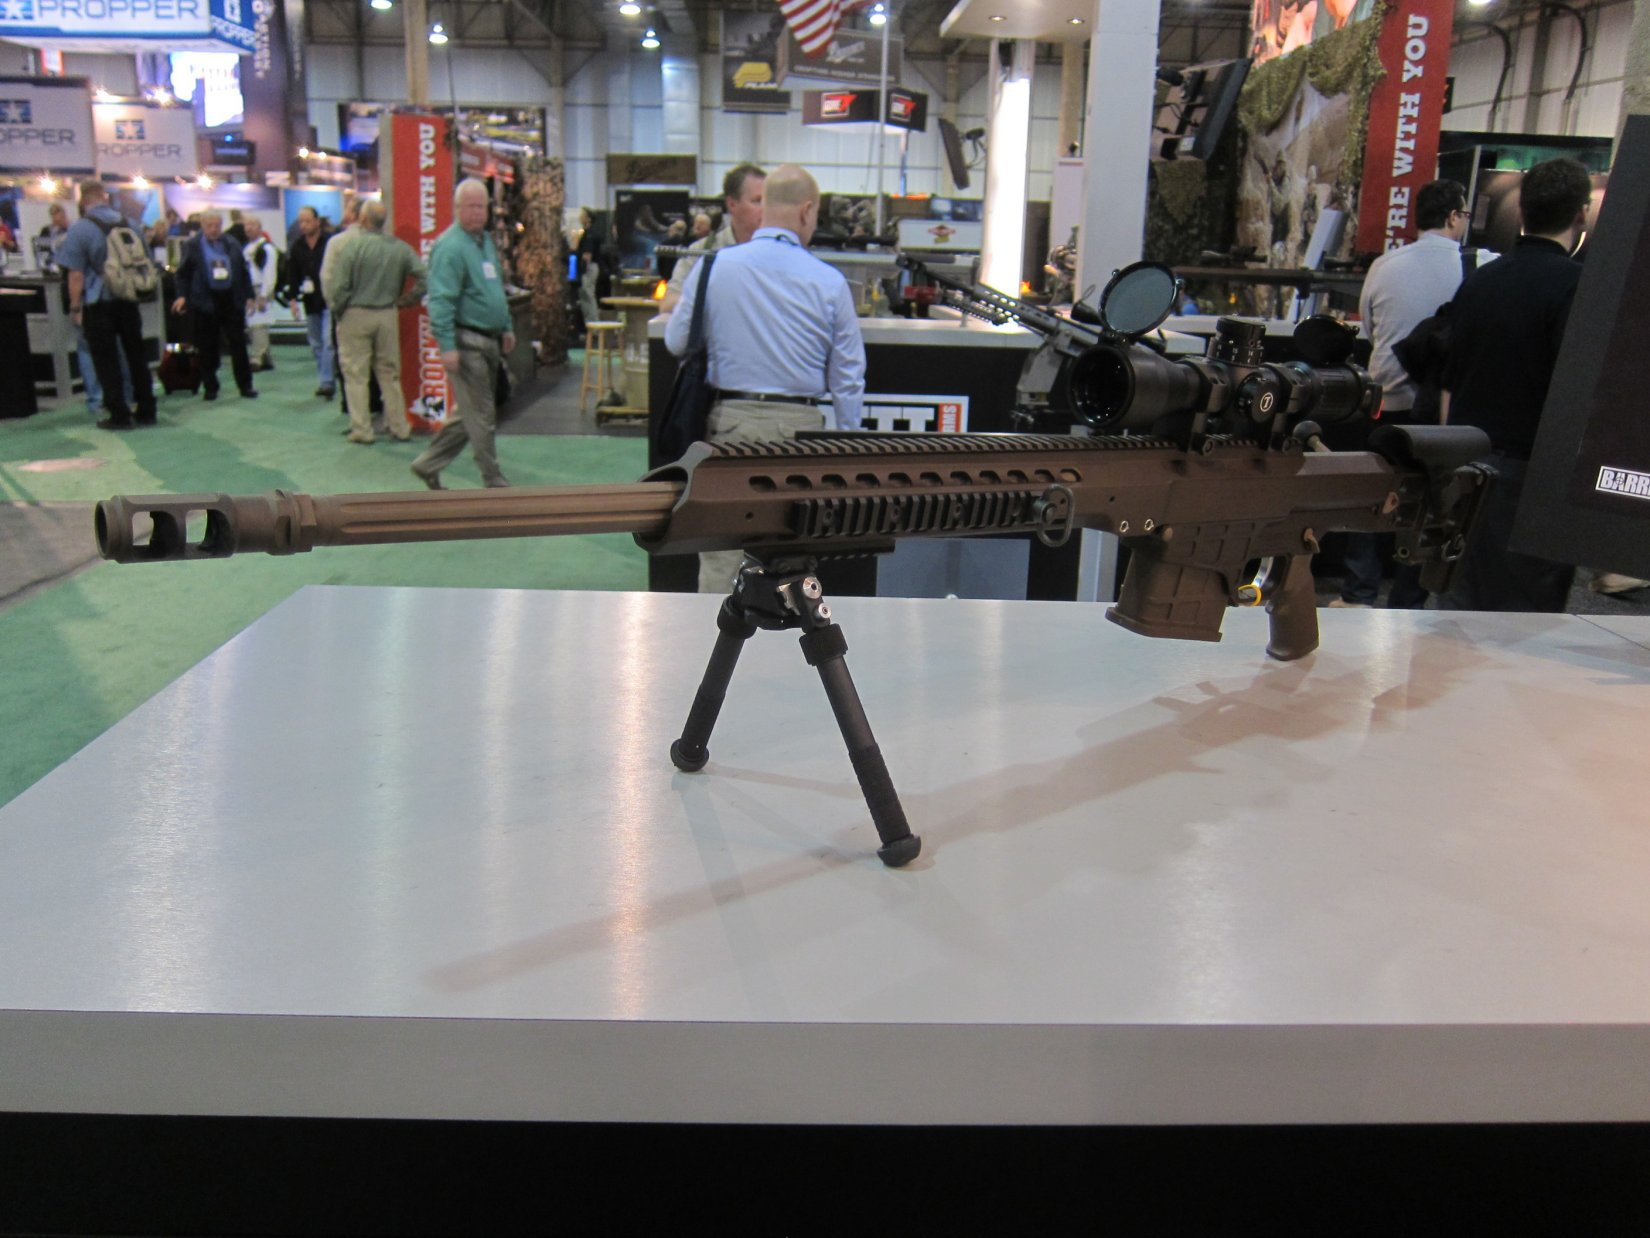 Barrett MRAD Multi Role Adaptive Design Multi Caliber .338 Lapua Magnum Rifle SHOT Show 2012 DefenseReview.com DR 4 Barrett MRAD (Multi Role Adaptive Design) Multi Caliber .338 Lapua Magnum Bolt Action Anti Materiel/Sniper Rifle and G4tv Attack of the Show Crew at SHOT Show 2012 (Video!)